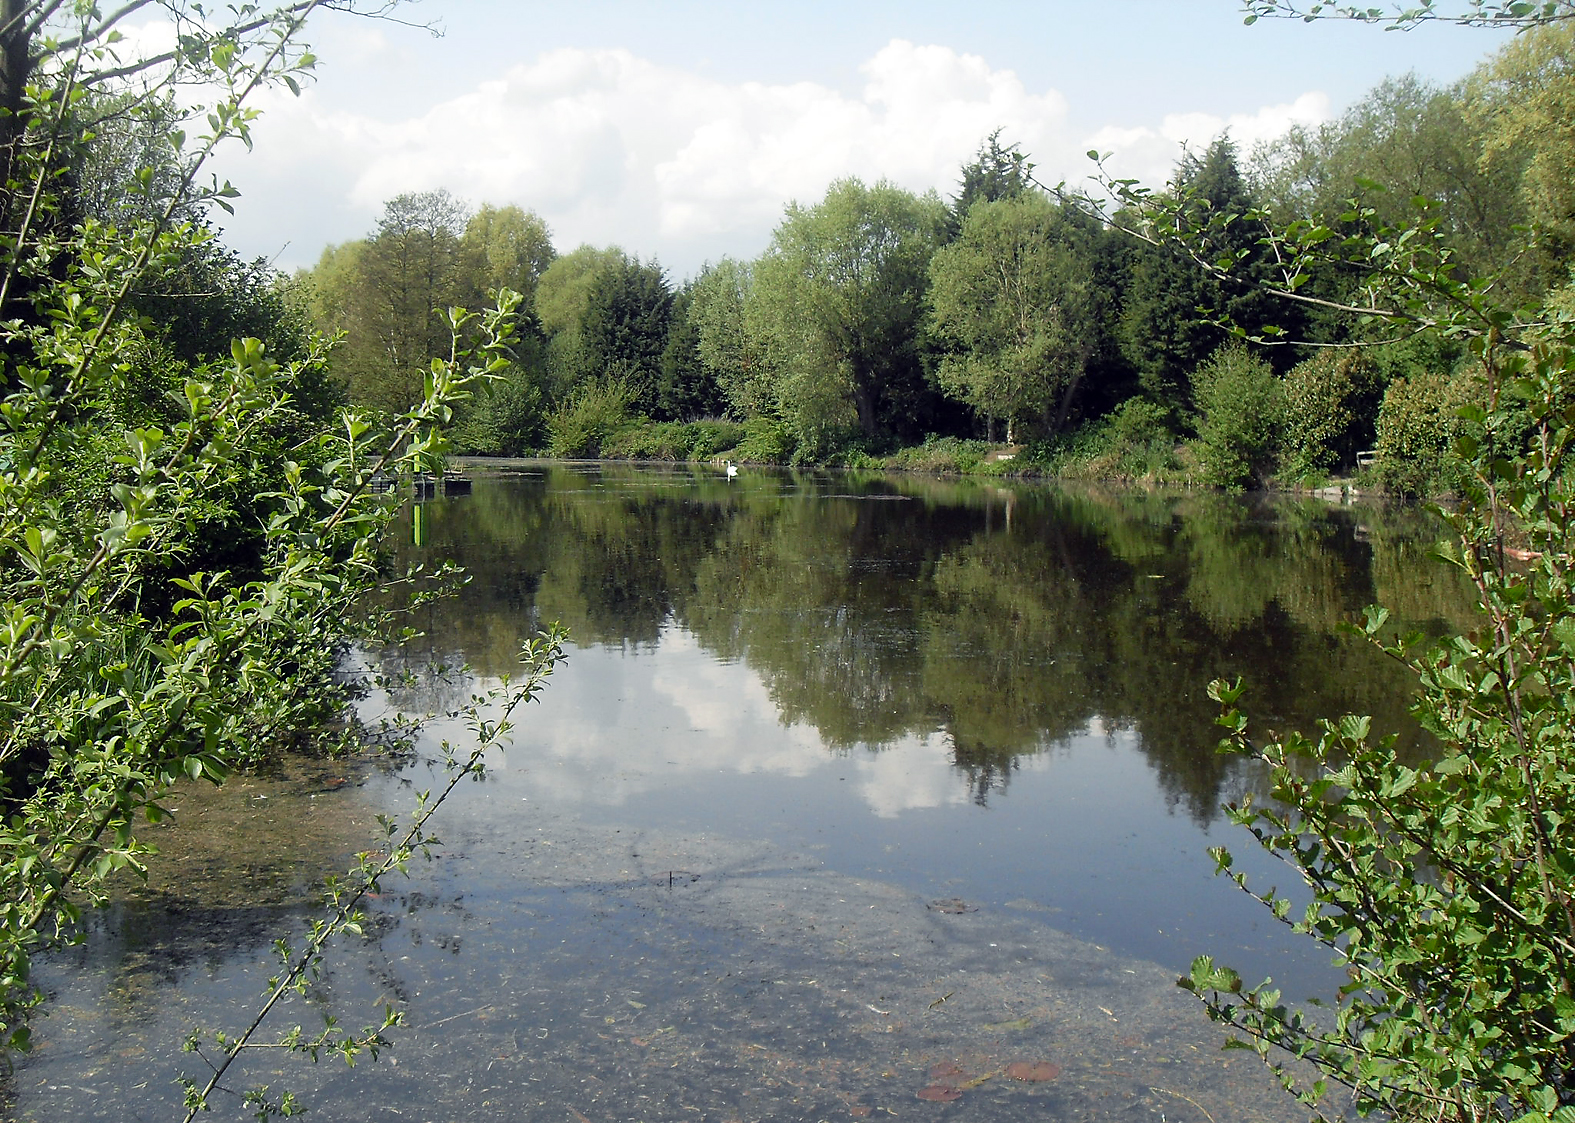 A lovely little club water is our venue for a bit of tench fishing